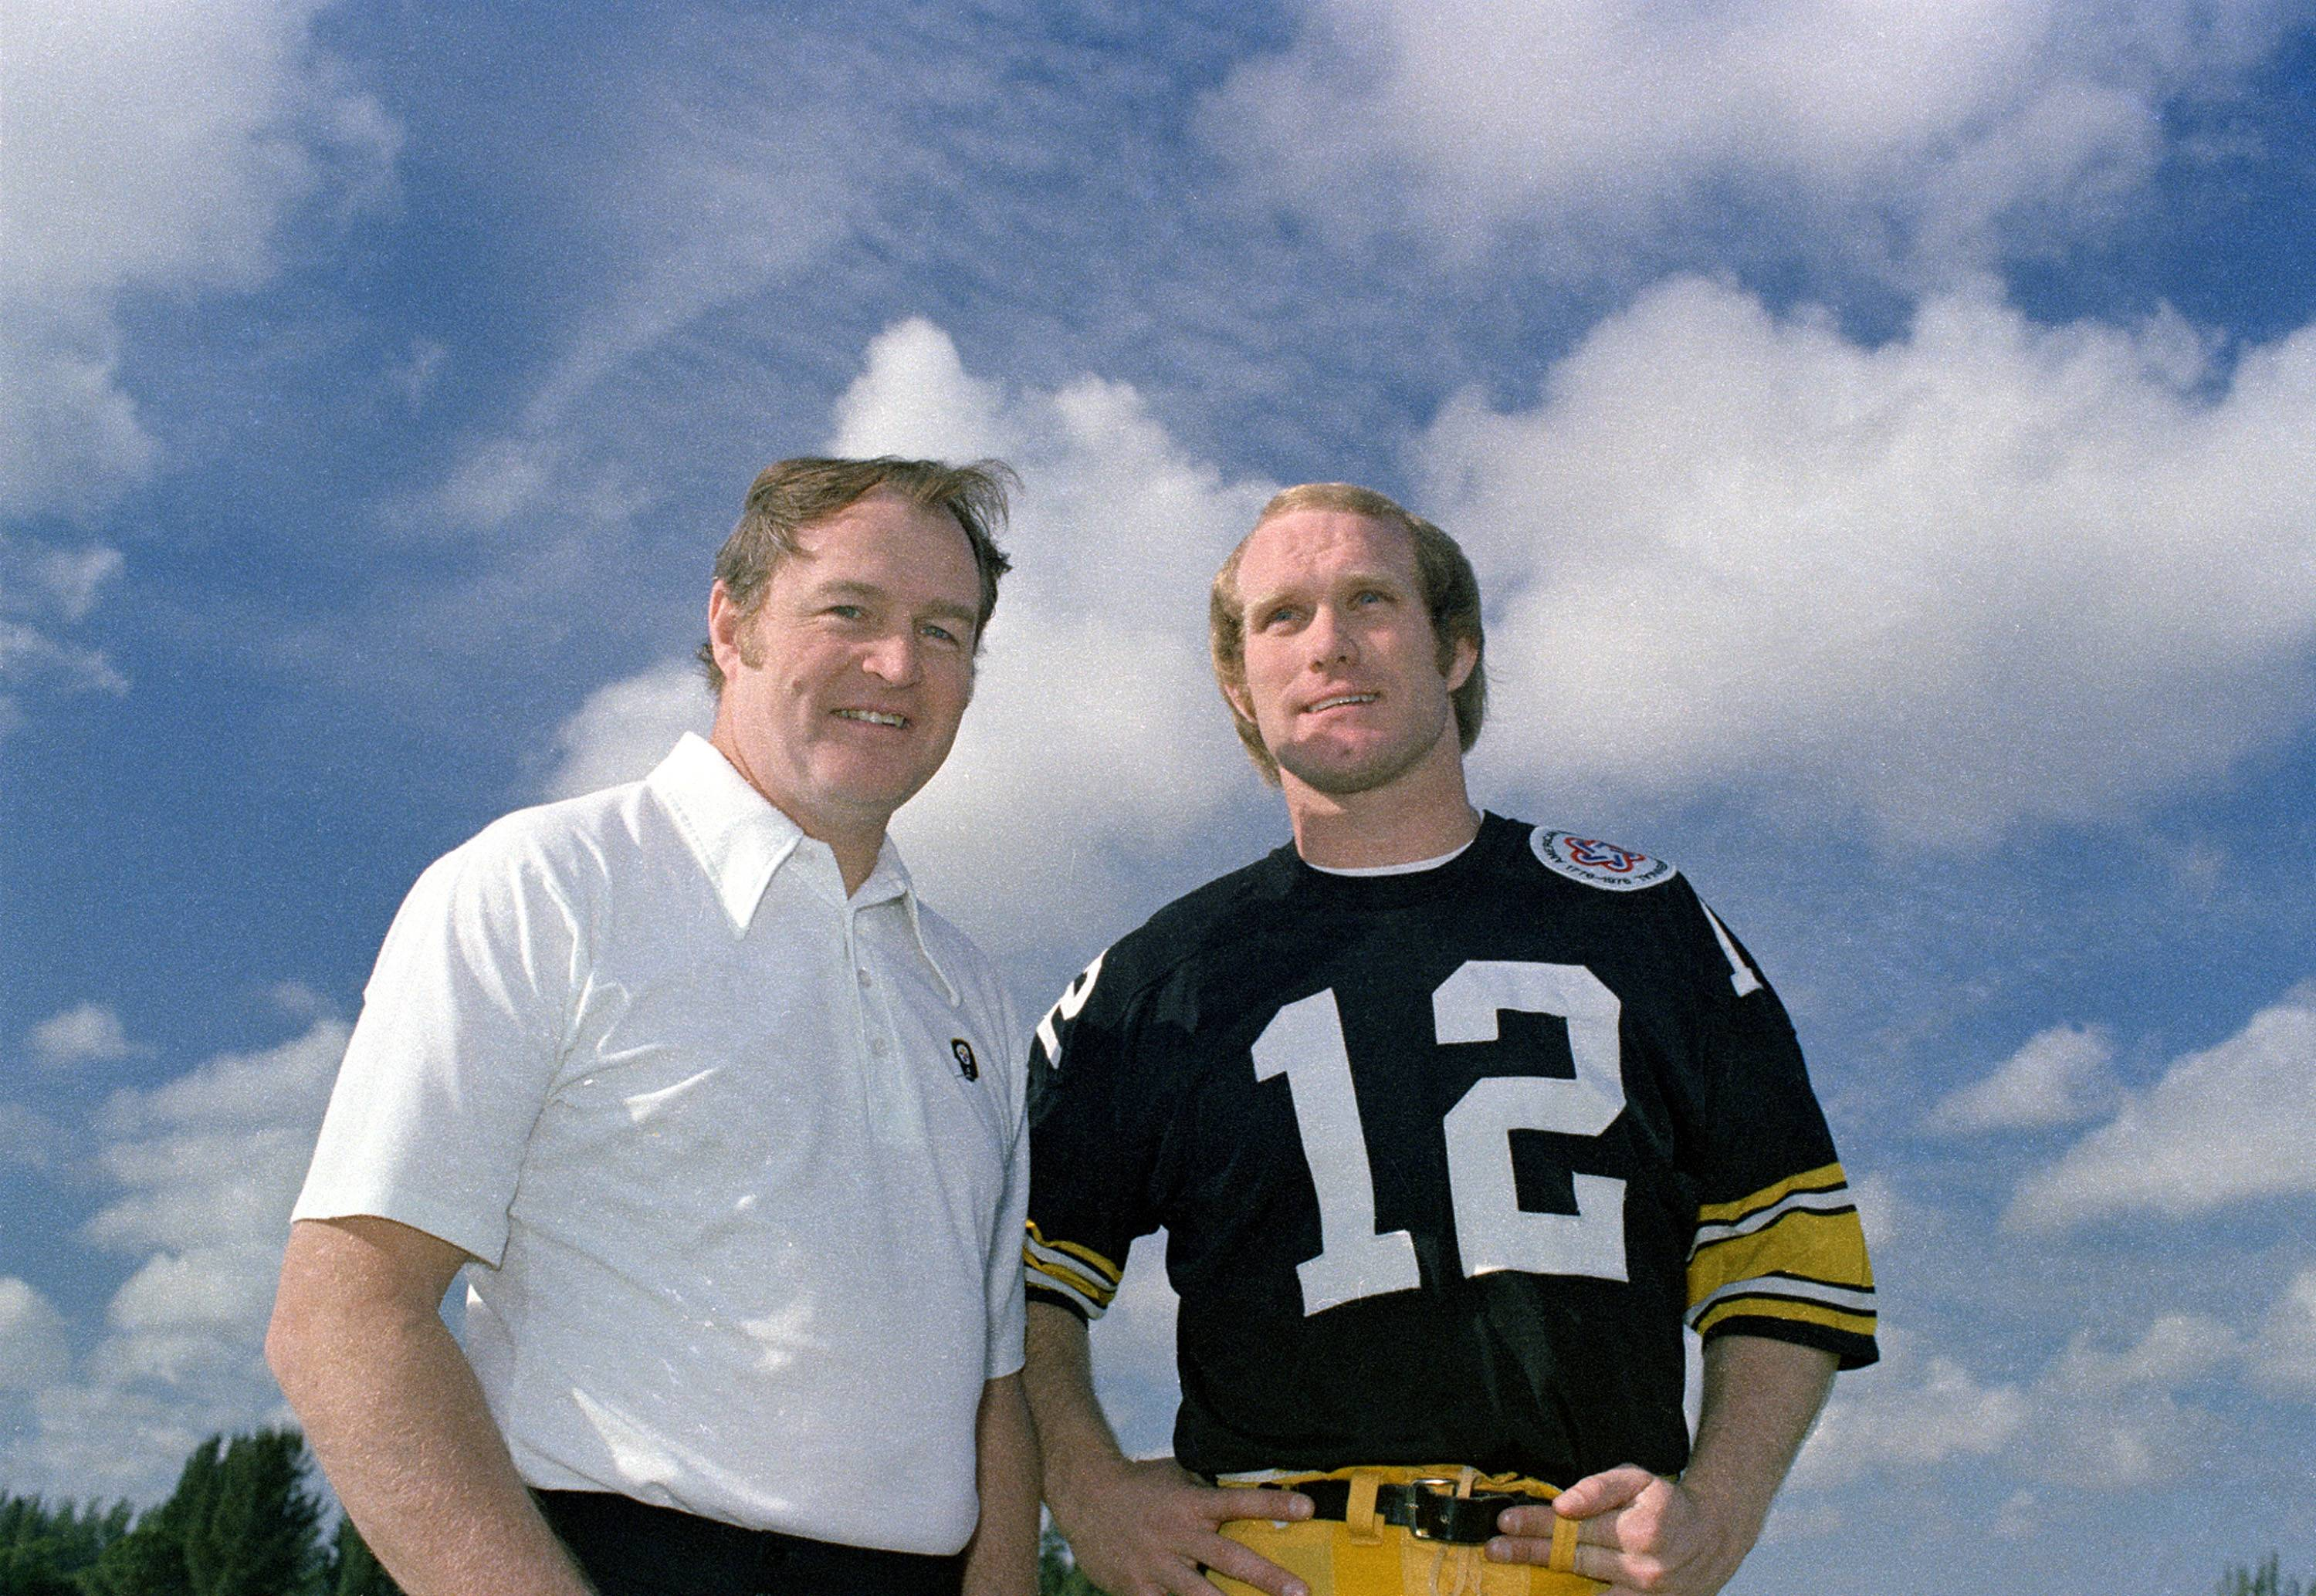 Coach Chuck Noll, left, and quarterback Terry Bradshaw in 1975. Both are in the Hall of Fame.